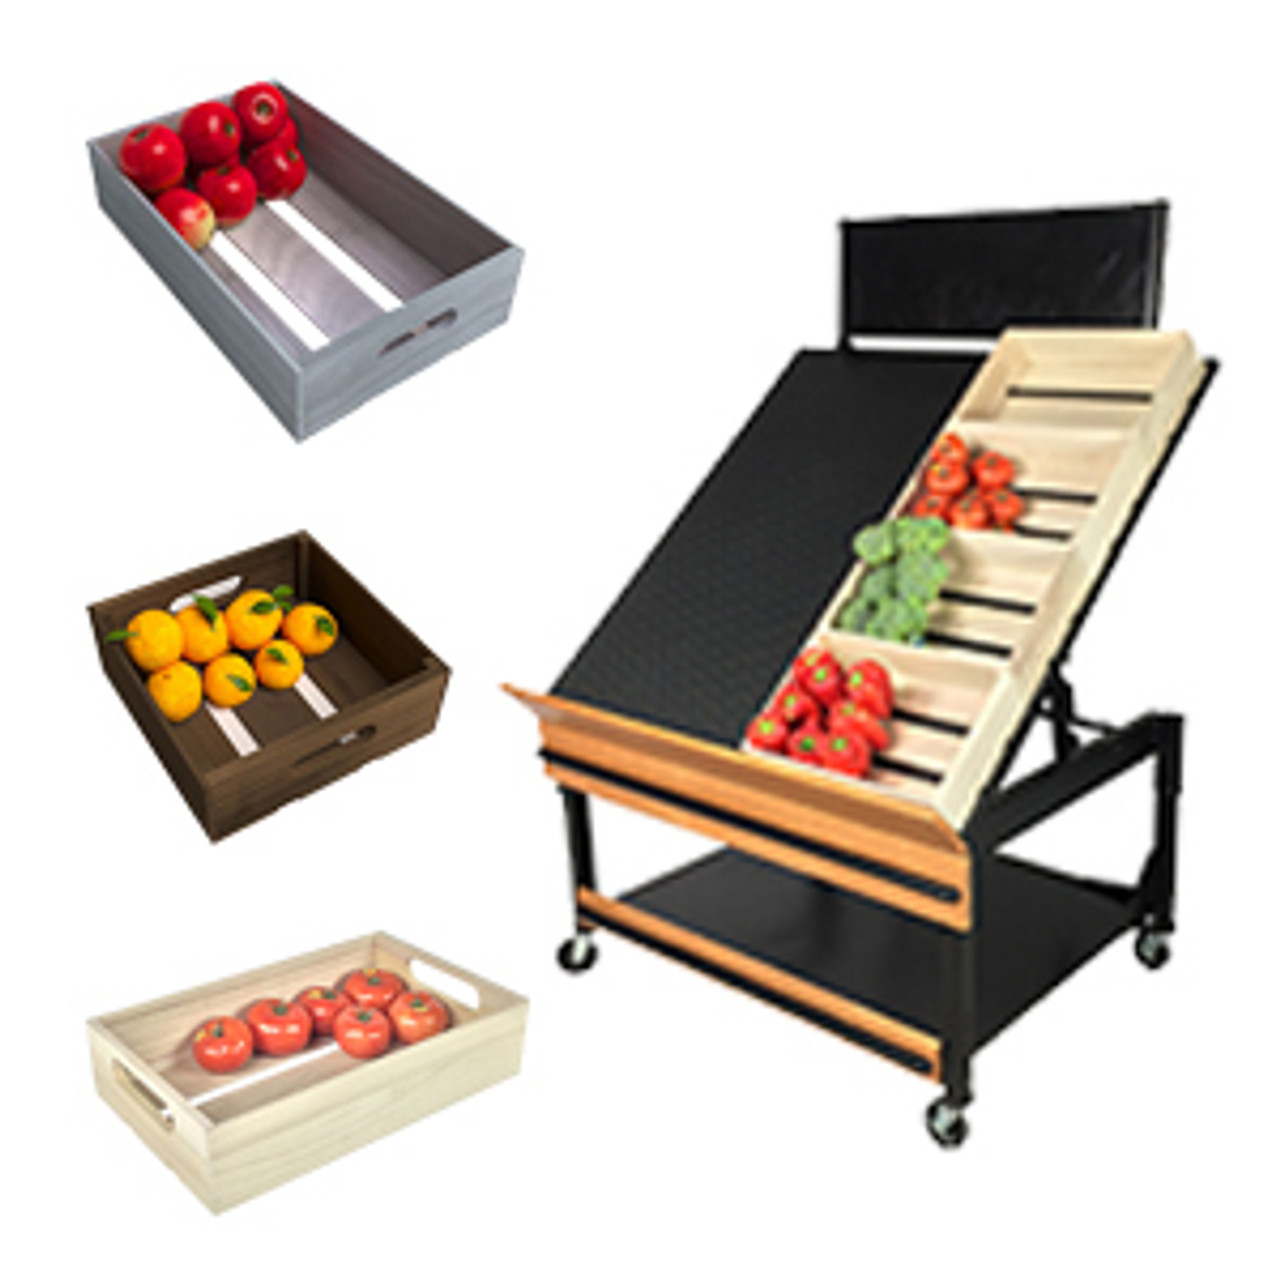 produce-display-crates